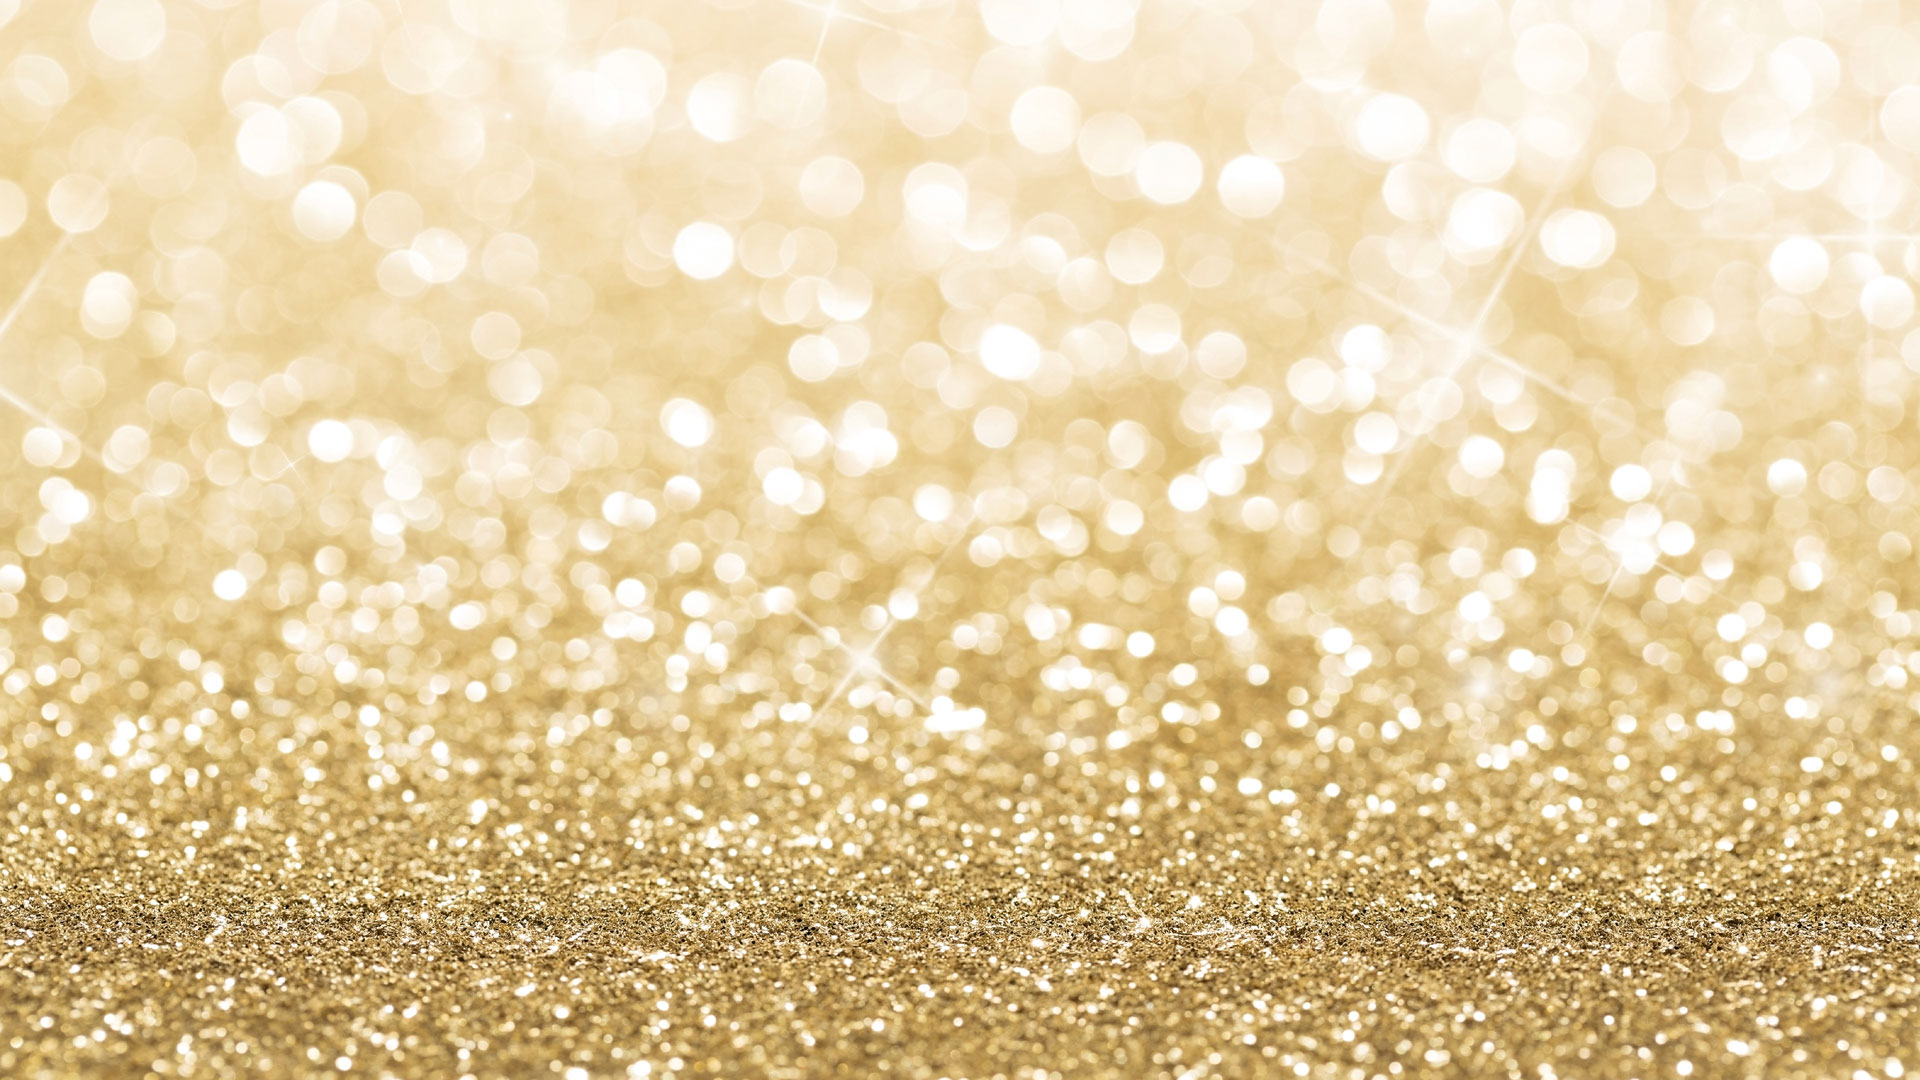 Glitter backgrounds free download pixelstalk net - Gold desktop background ...